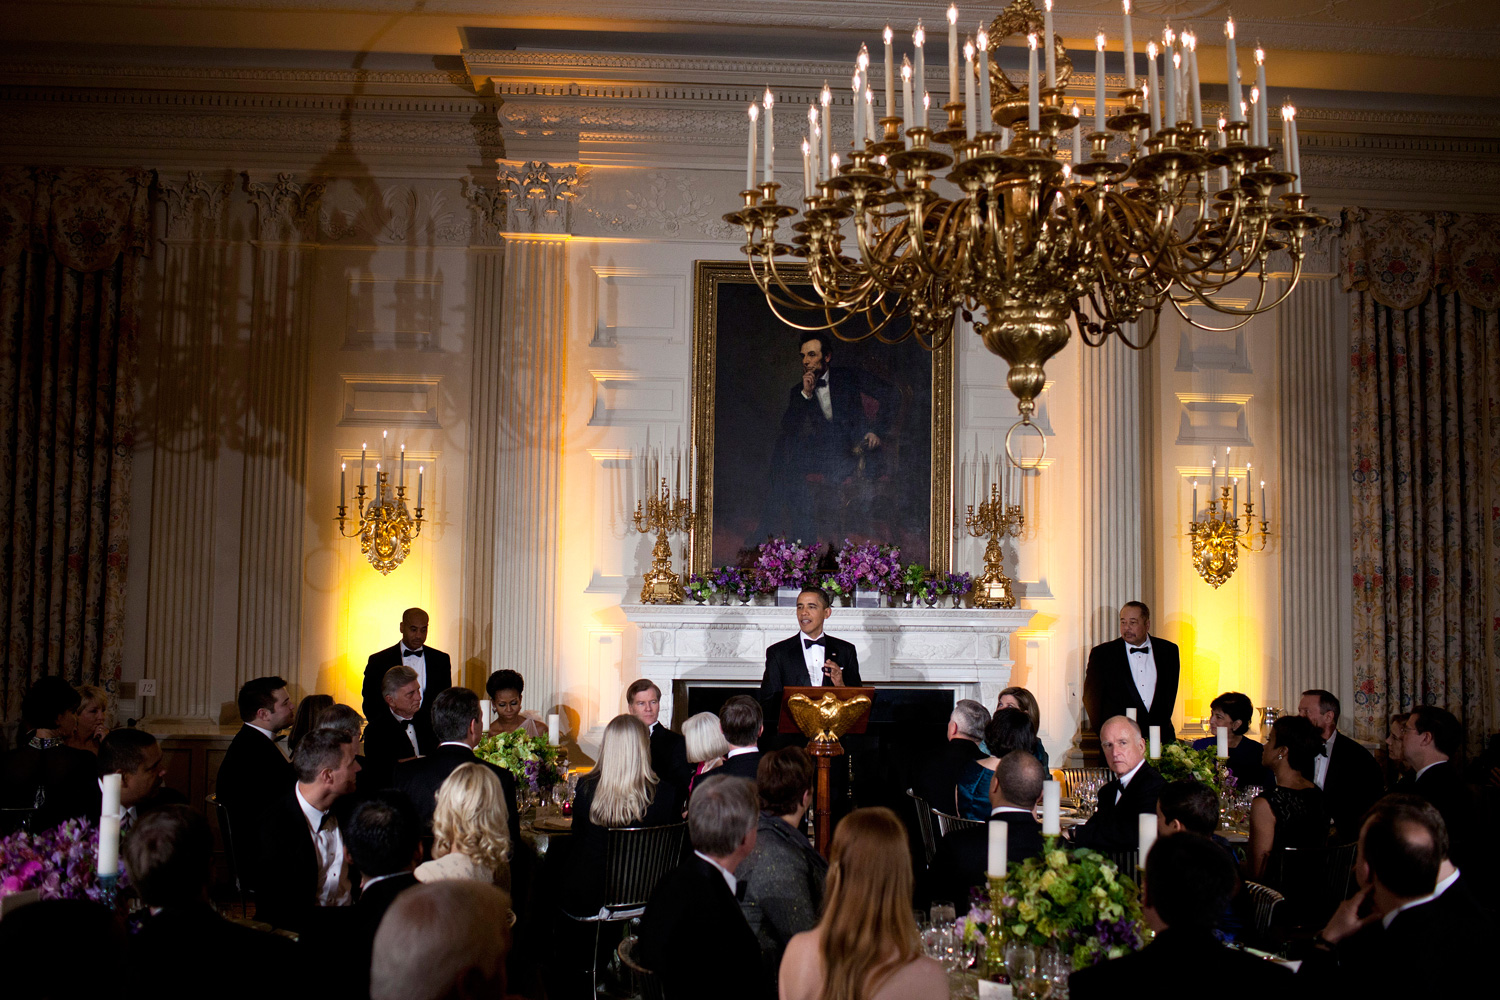 Feb. 26, 2012. U.S. President Barack Obama speaks in the State Dining Room of the White House in Washington, D.C.